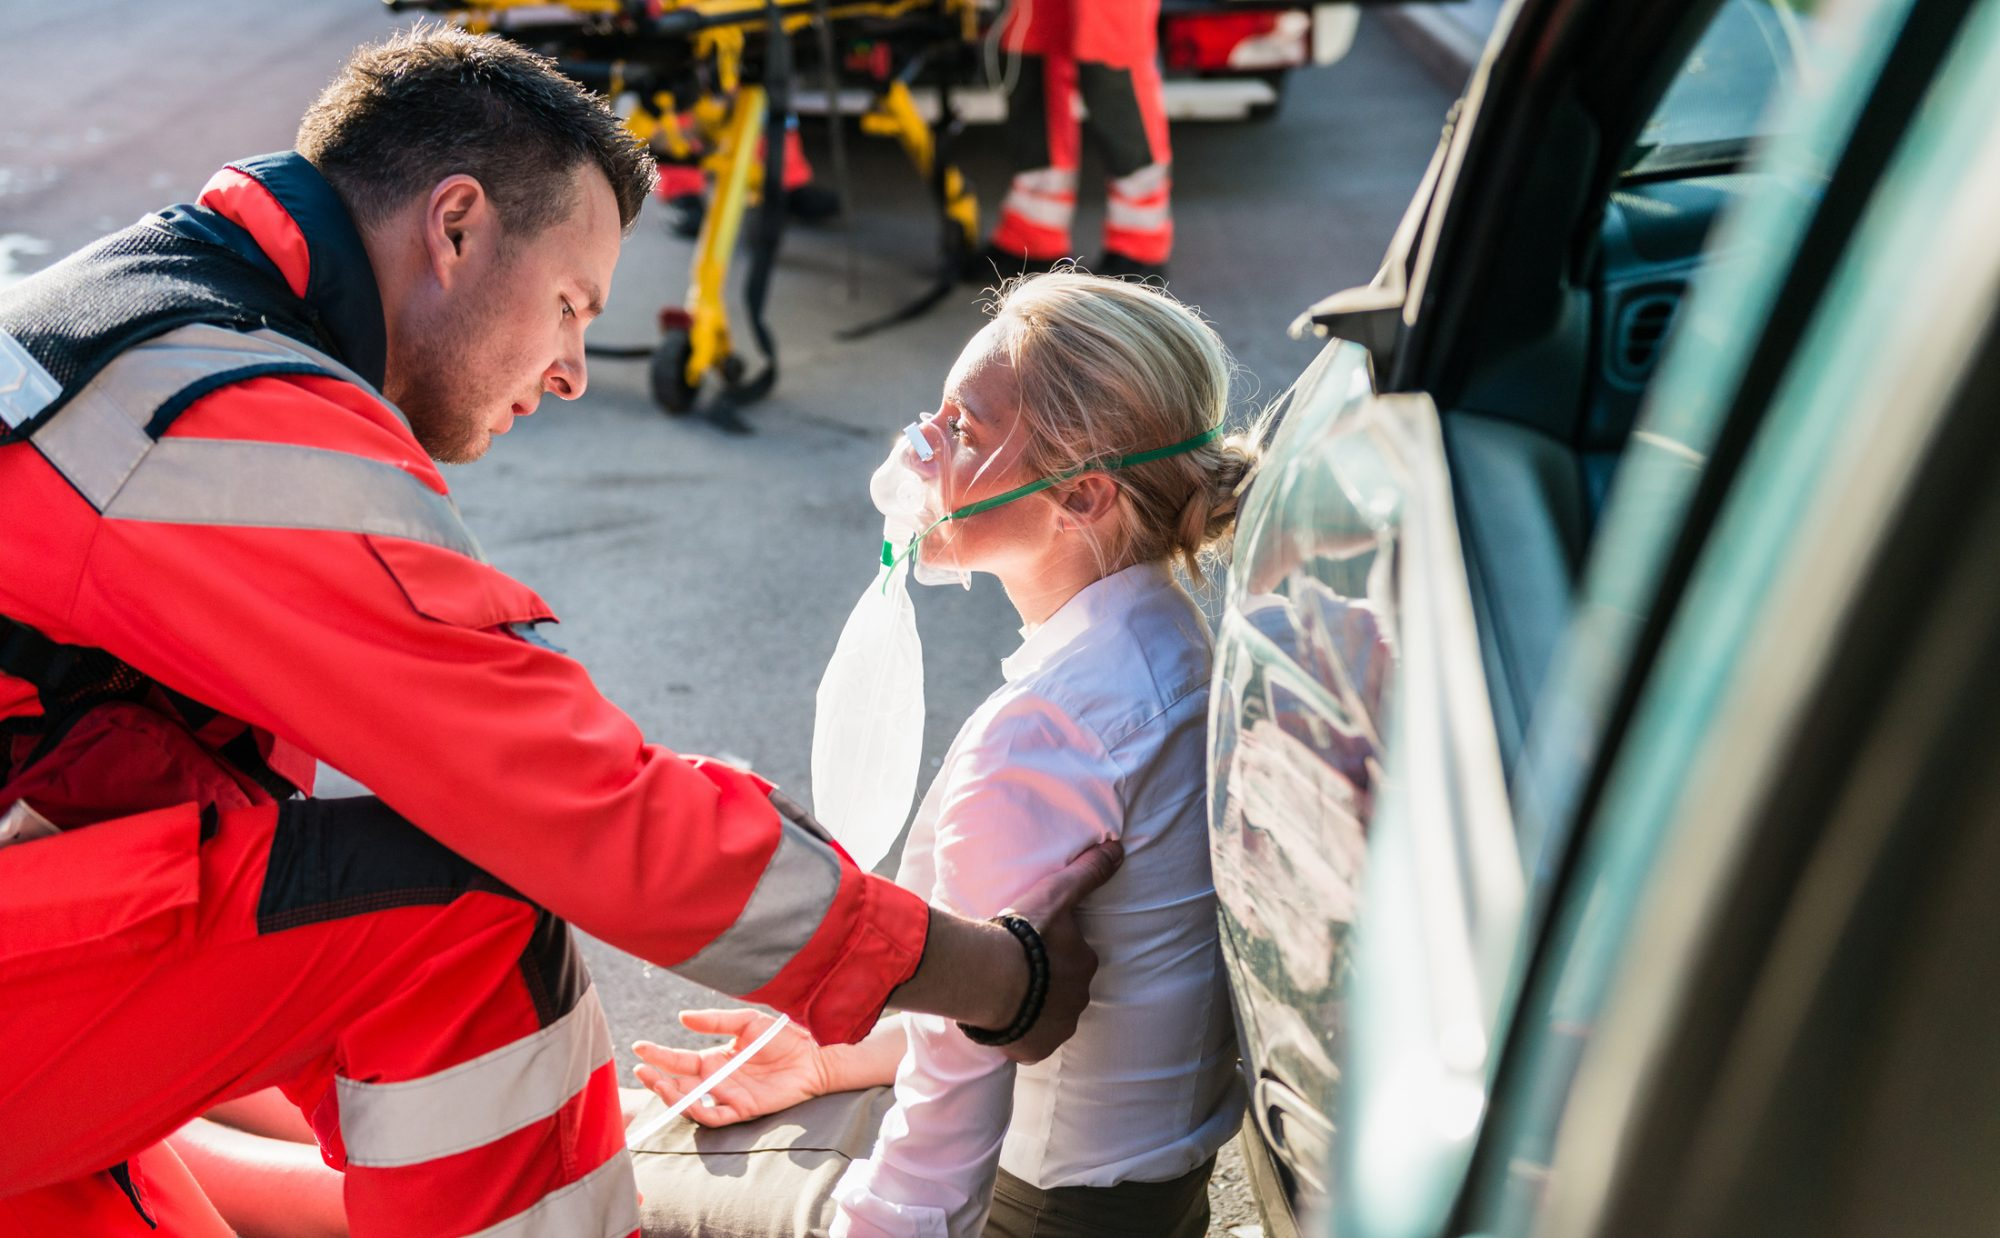 A woman being treated for injuries after a car accident.